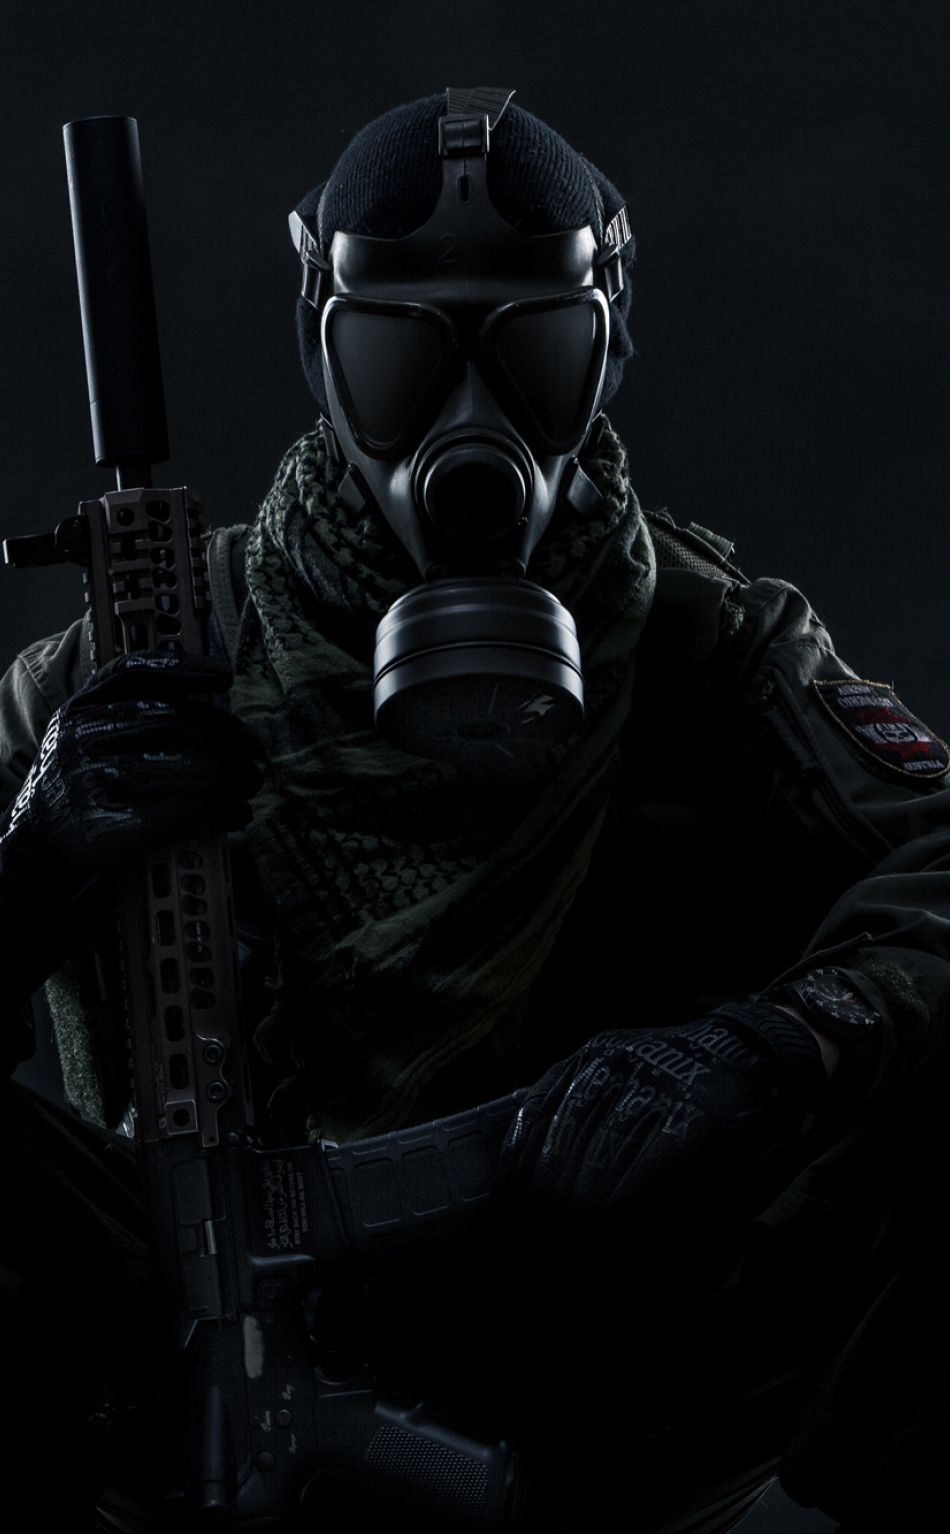 Gas mask soldier tom clancy s ghost recon wildlands full - Ghost recon wildlands mobile wallpaper ...